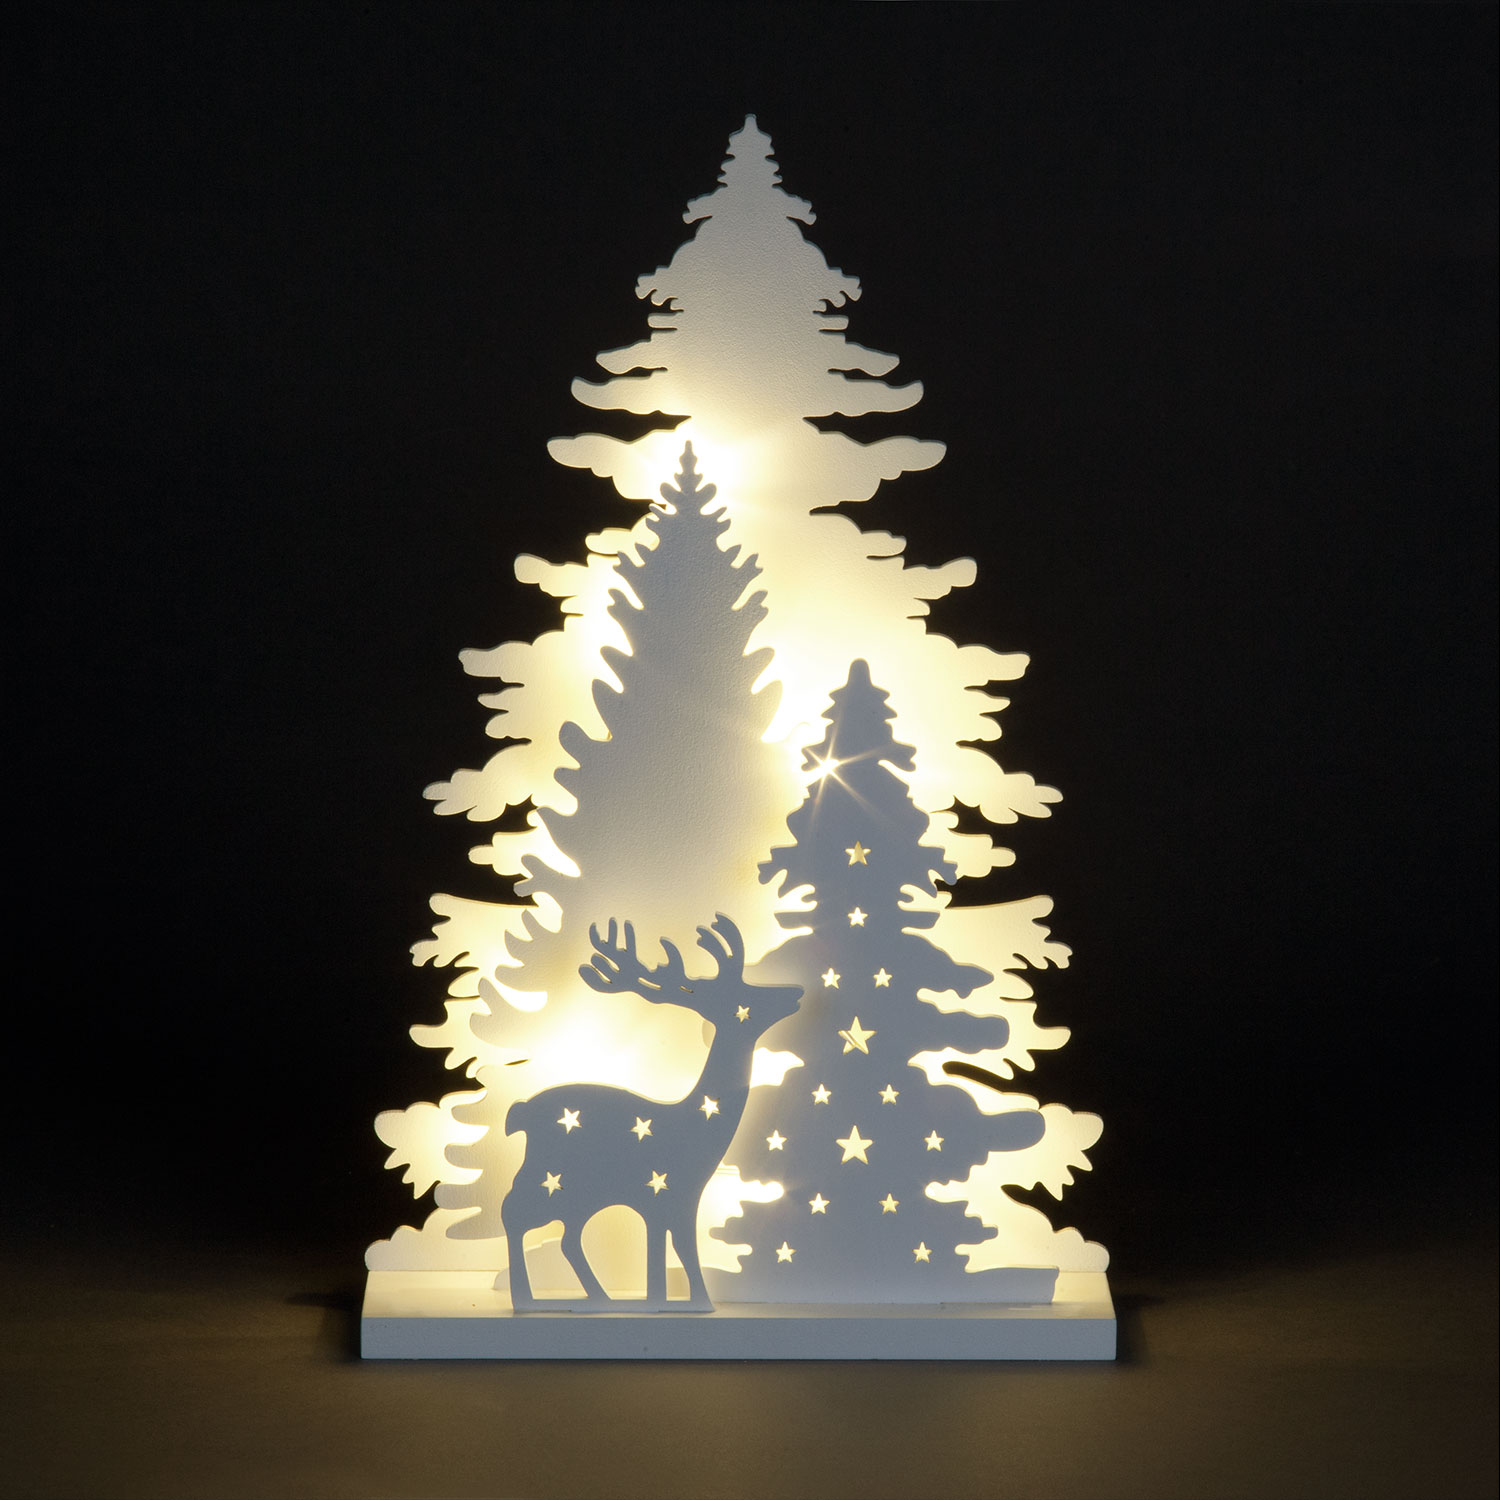 Christmas Trees and Lights 3 Layer LED Wooden Xmas Trees & Deer